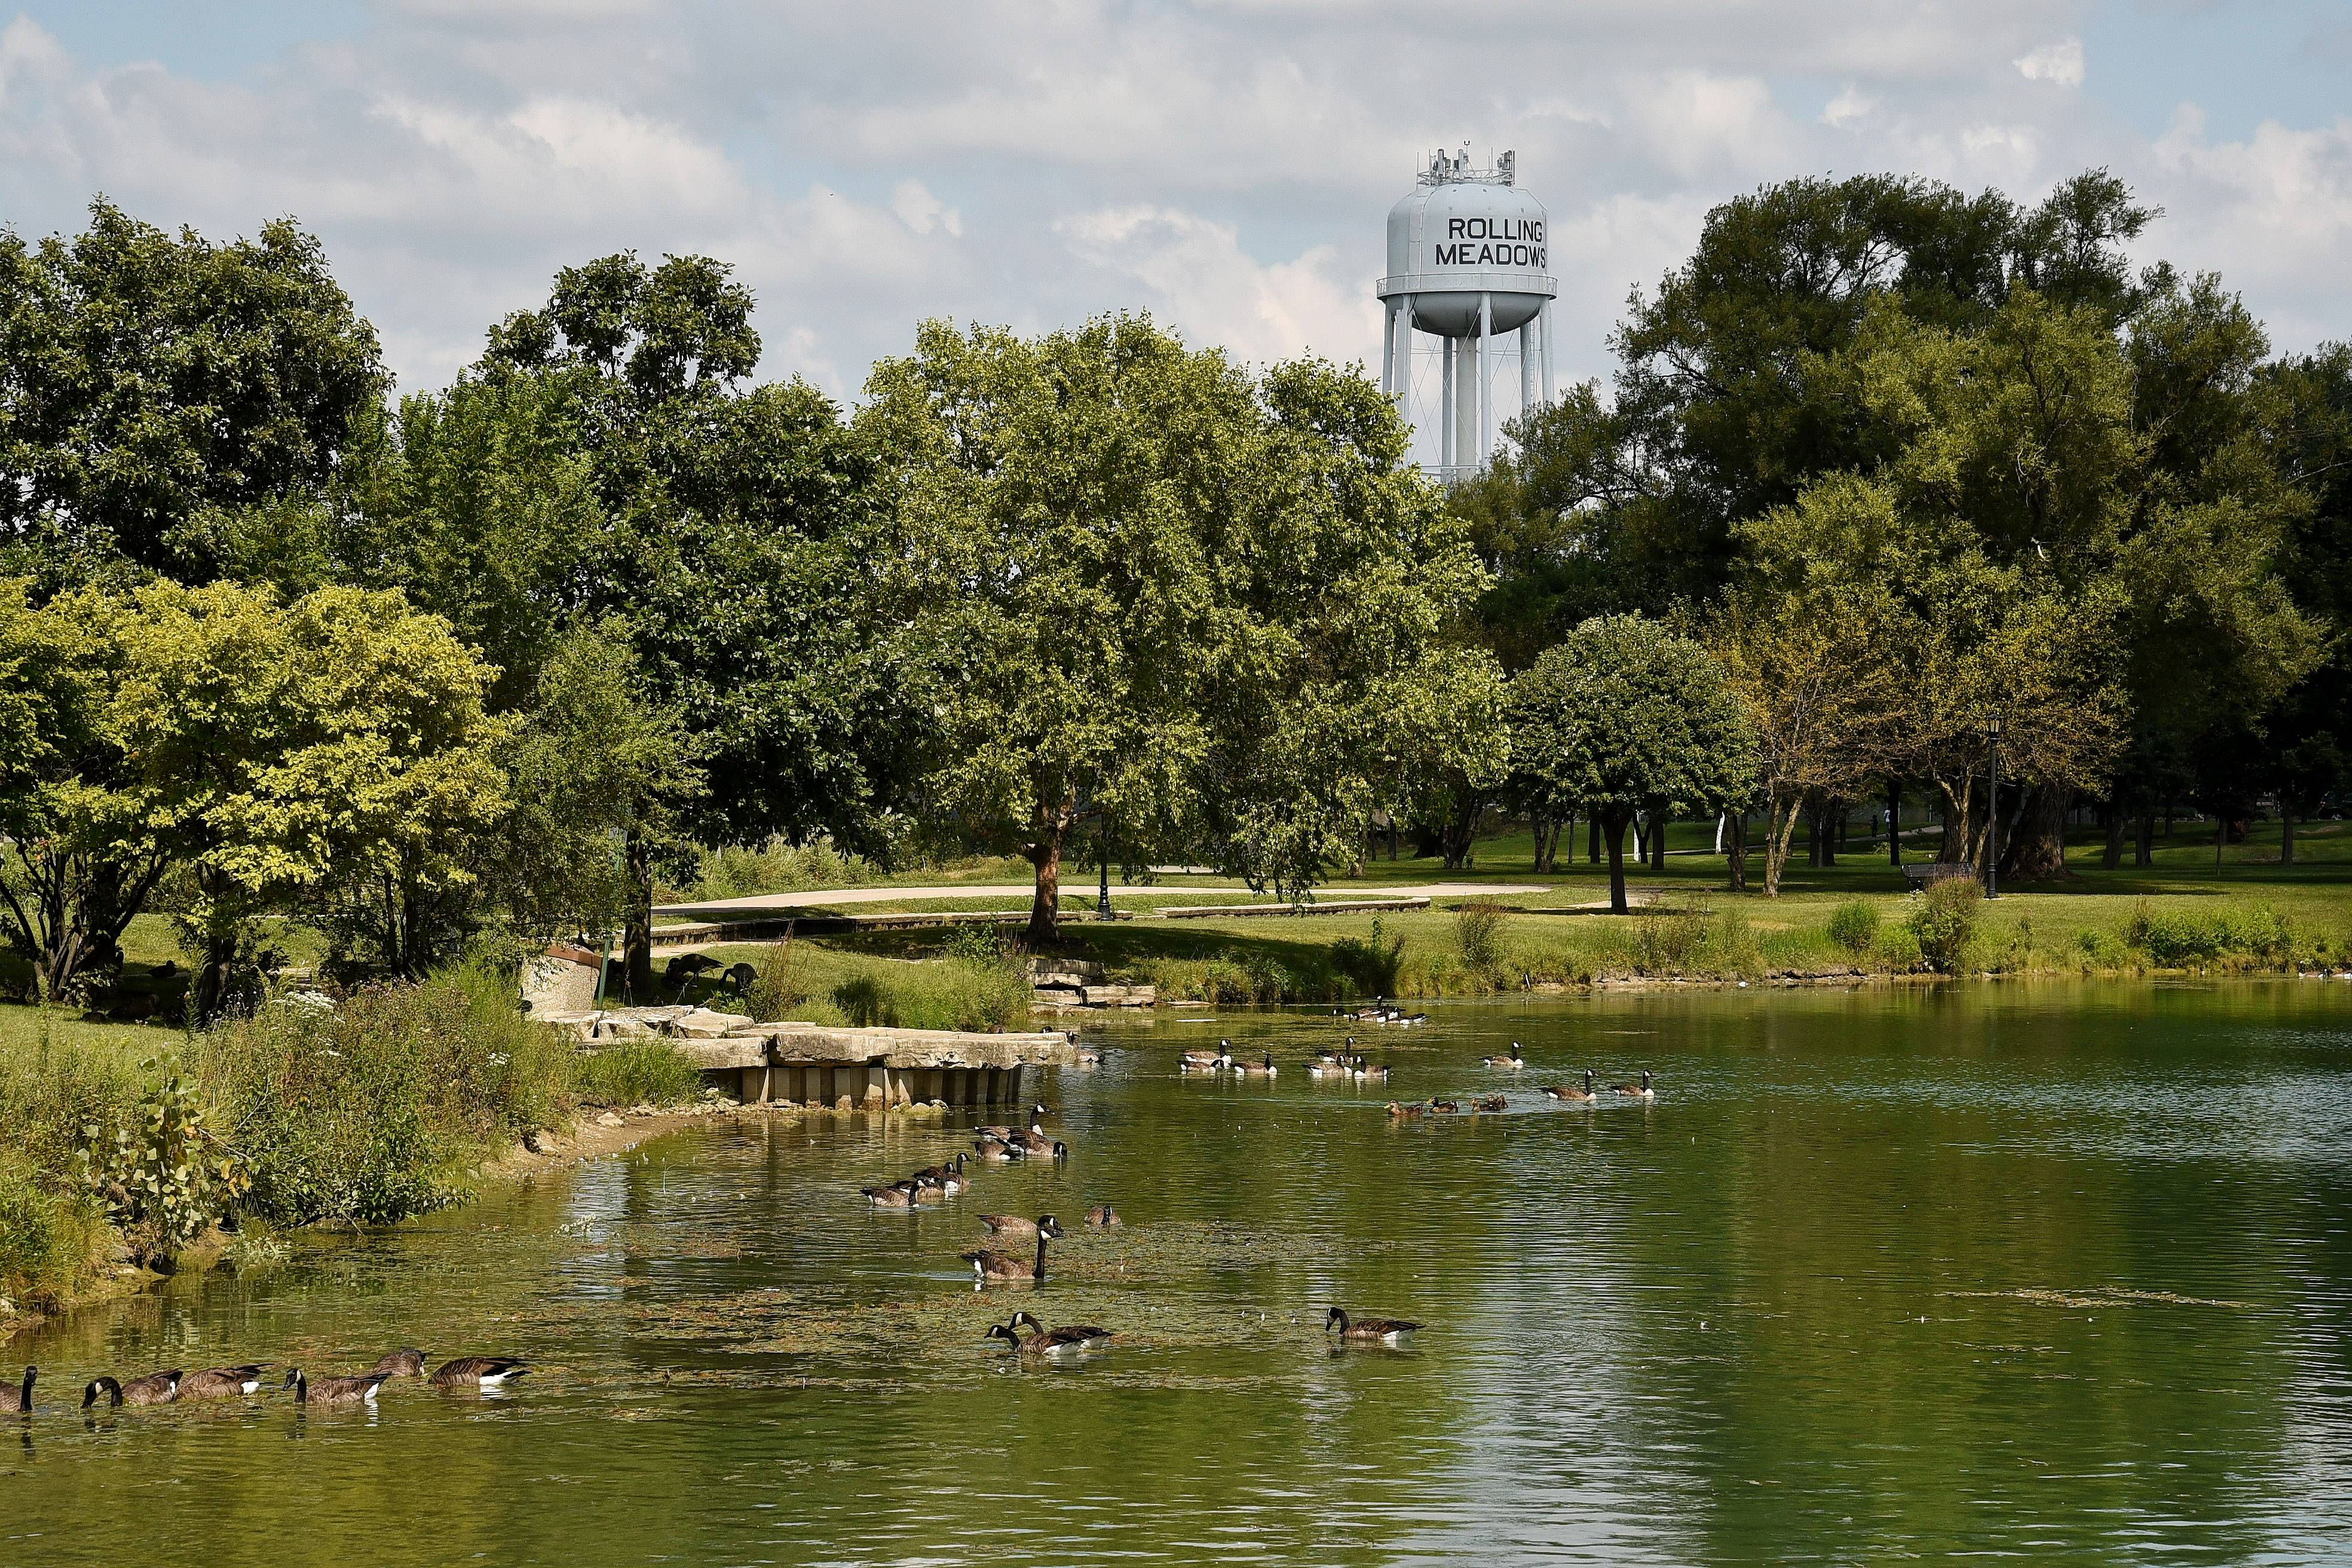 An application to install a 75-foot cellphone tower in Kimball Hill Park in Rolling Meadows is pending, city officials say. Meanwhile, a proposal to reduce the permitted height of antennas citywide to 45 feet was rejected.